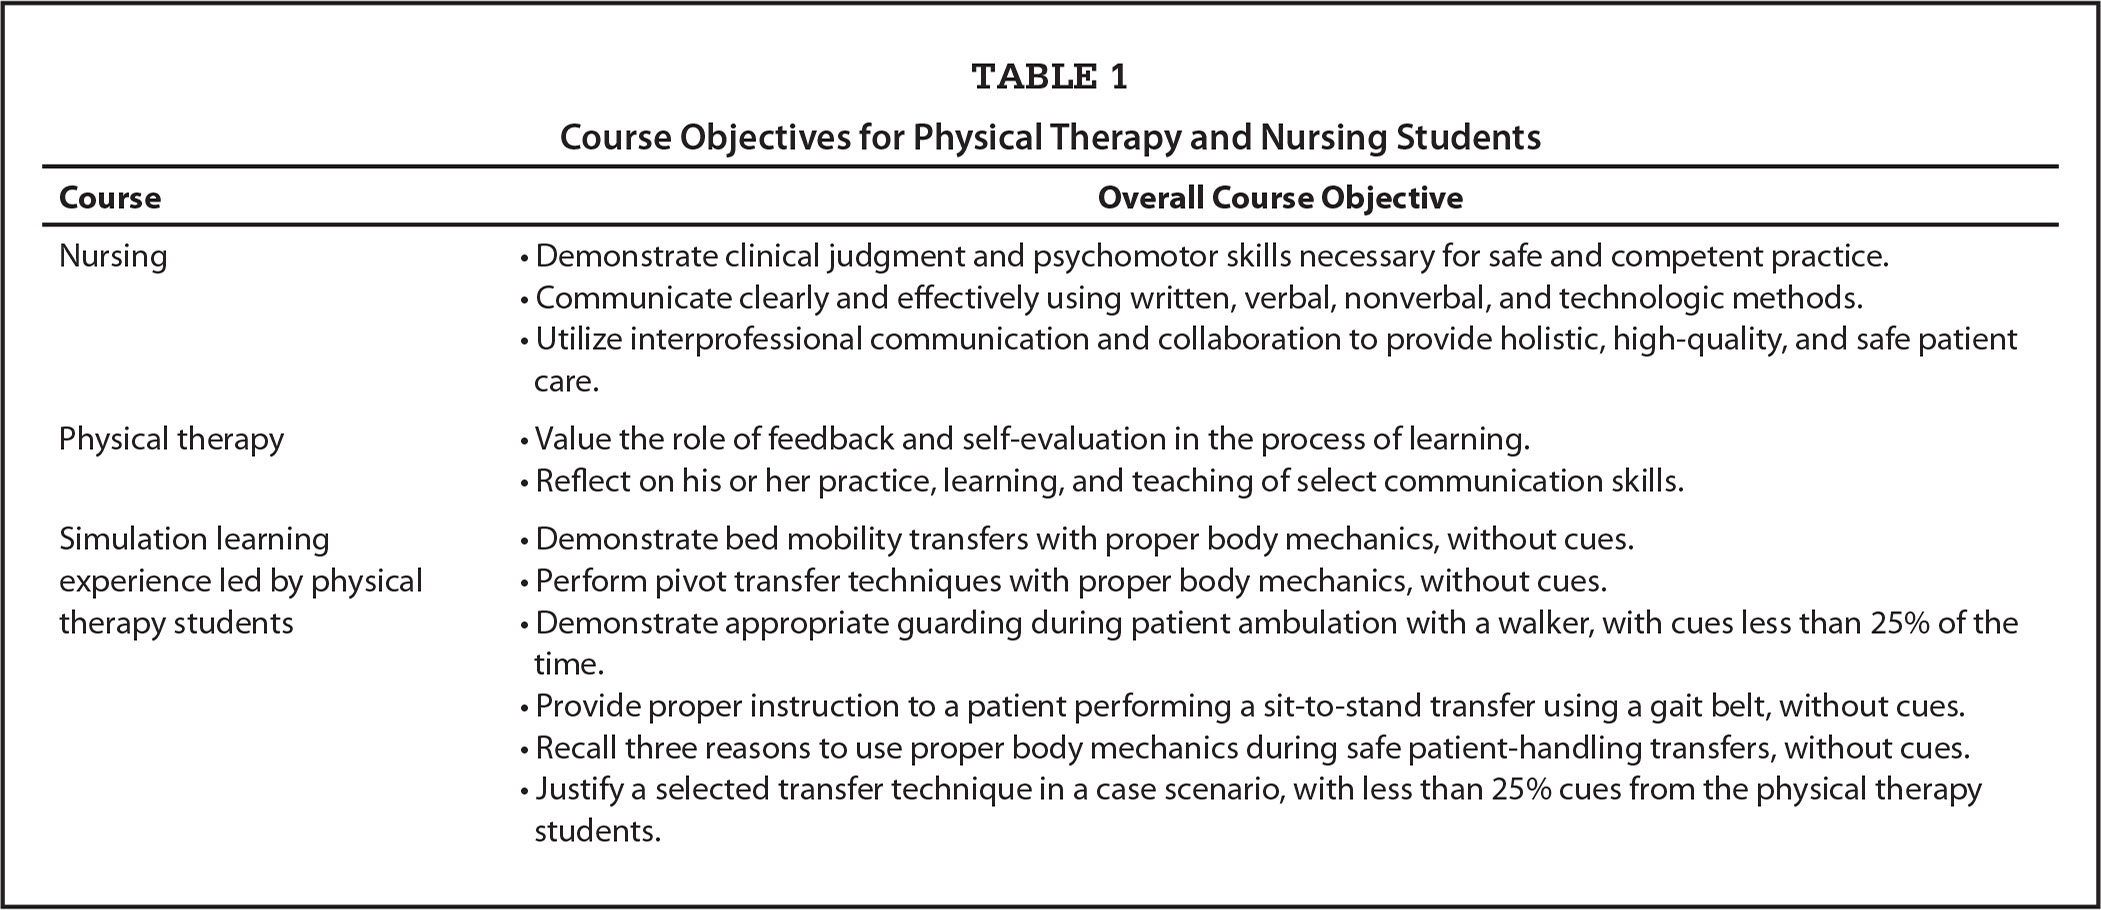 Interprofessional Teaching Project With Nursing And Physical Therapy Students To Promote